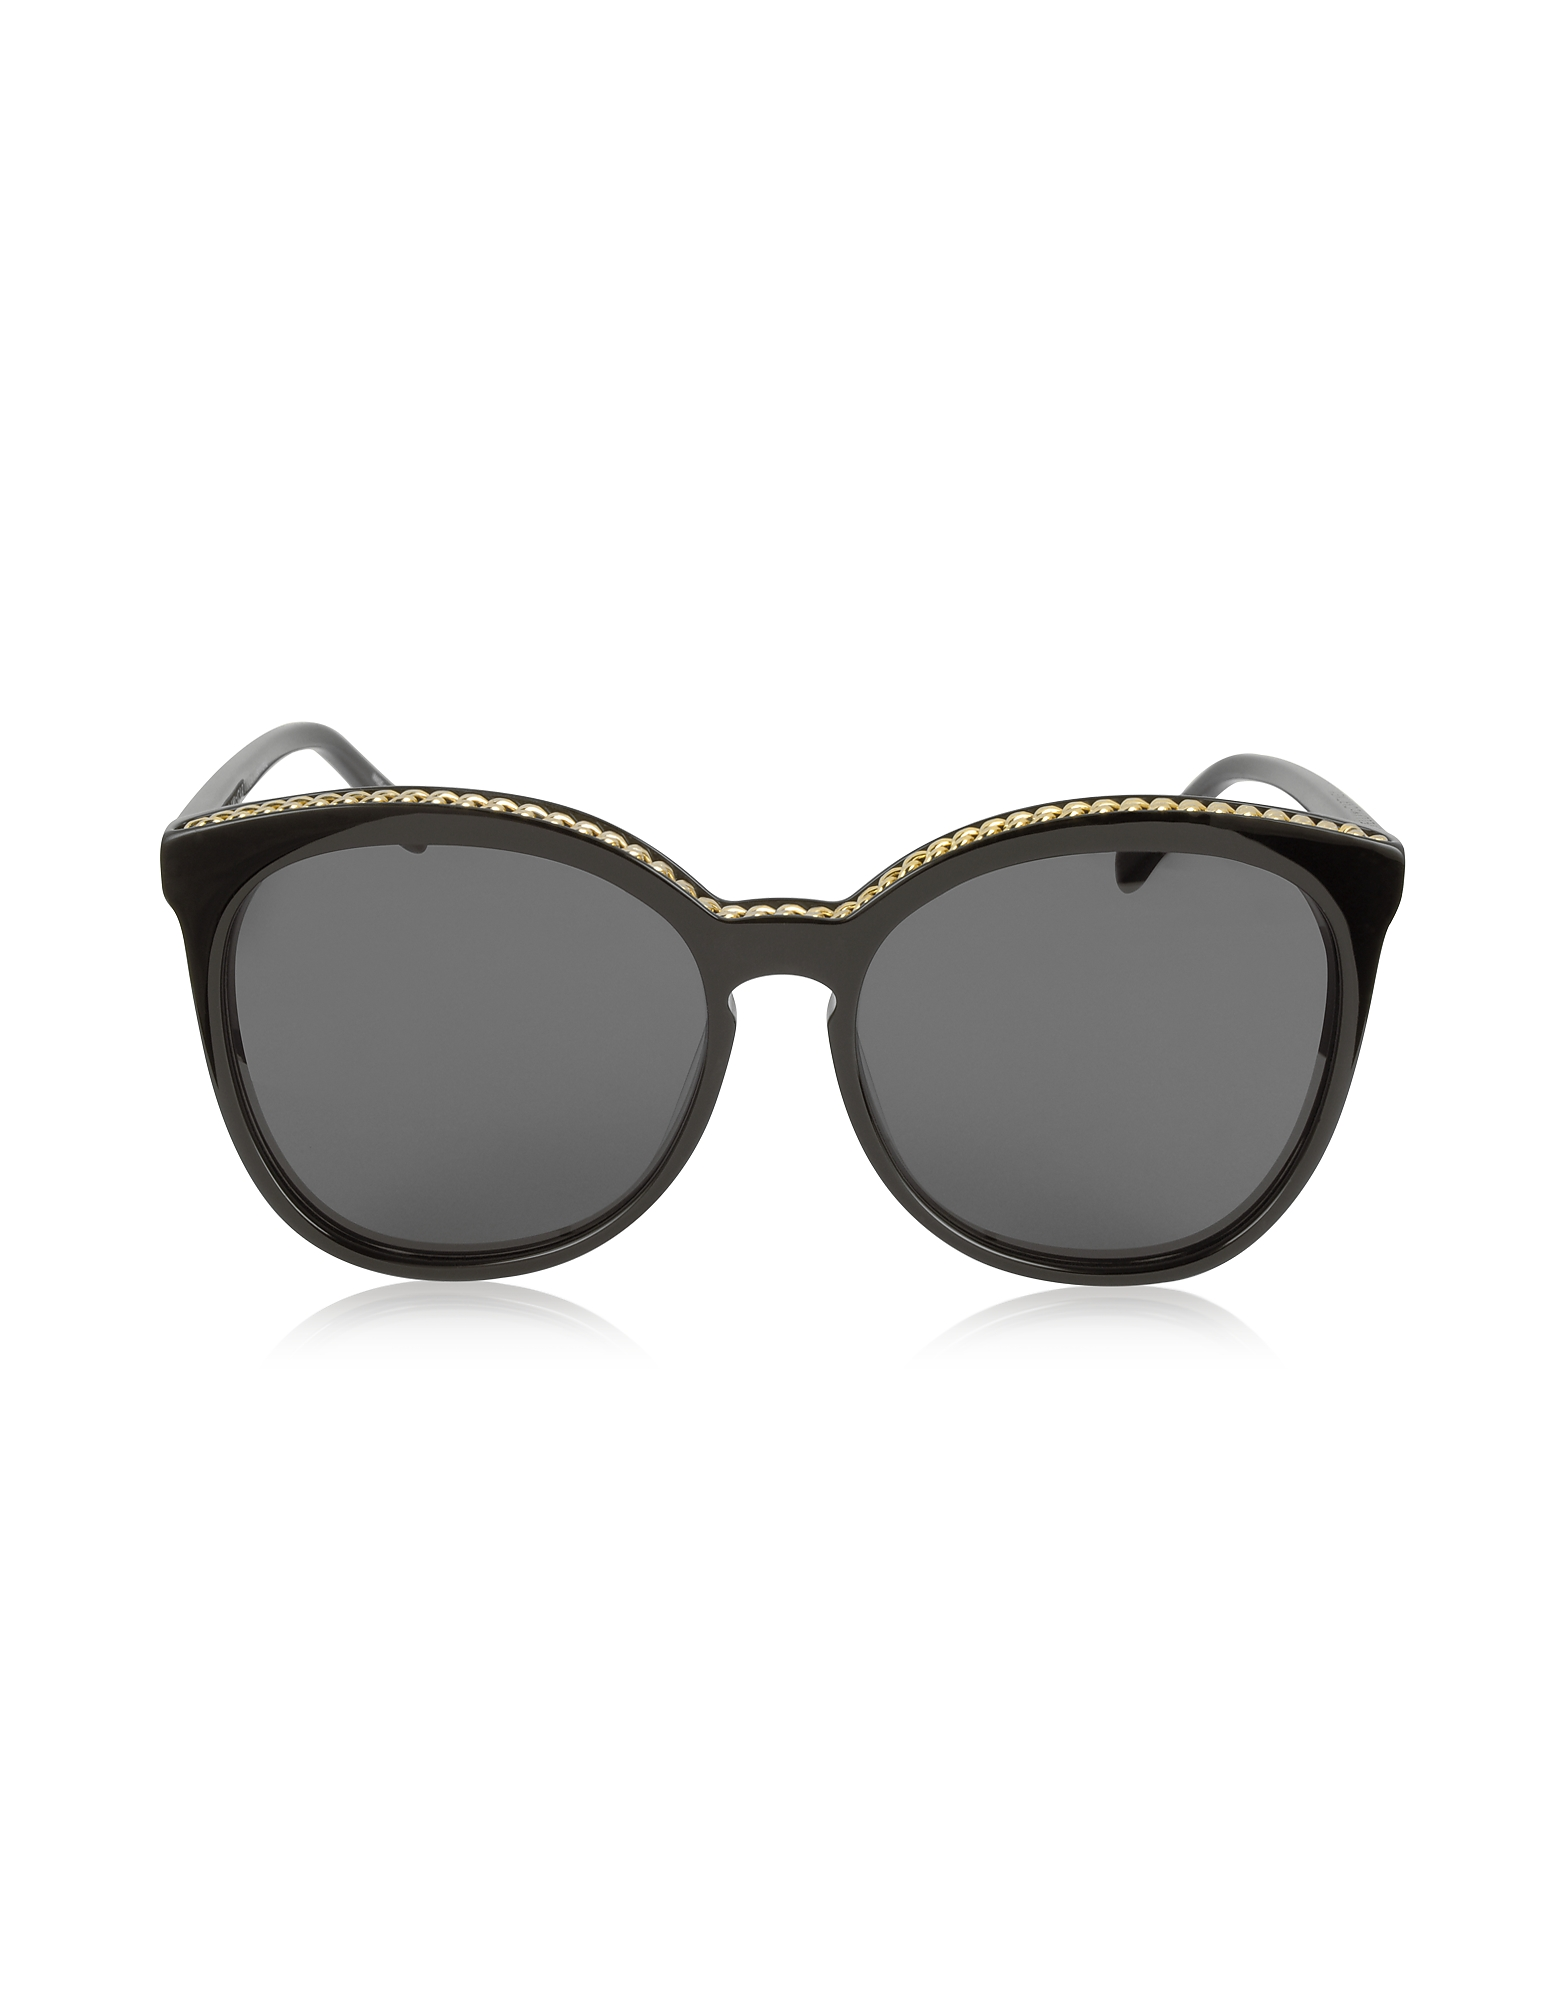 Stella McCartney Sunglasses, SC0074S Acetate Cat-Eye Women's Sunglasses w/Goldtone Chain